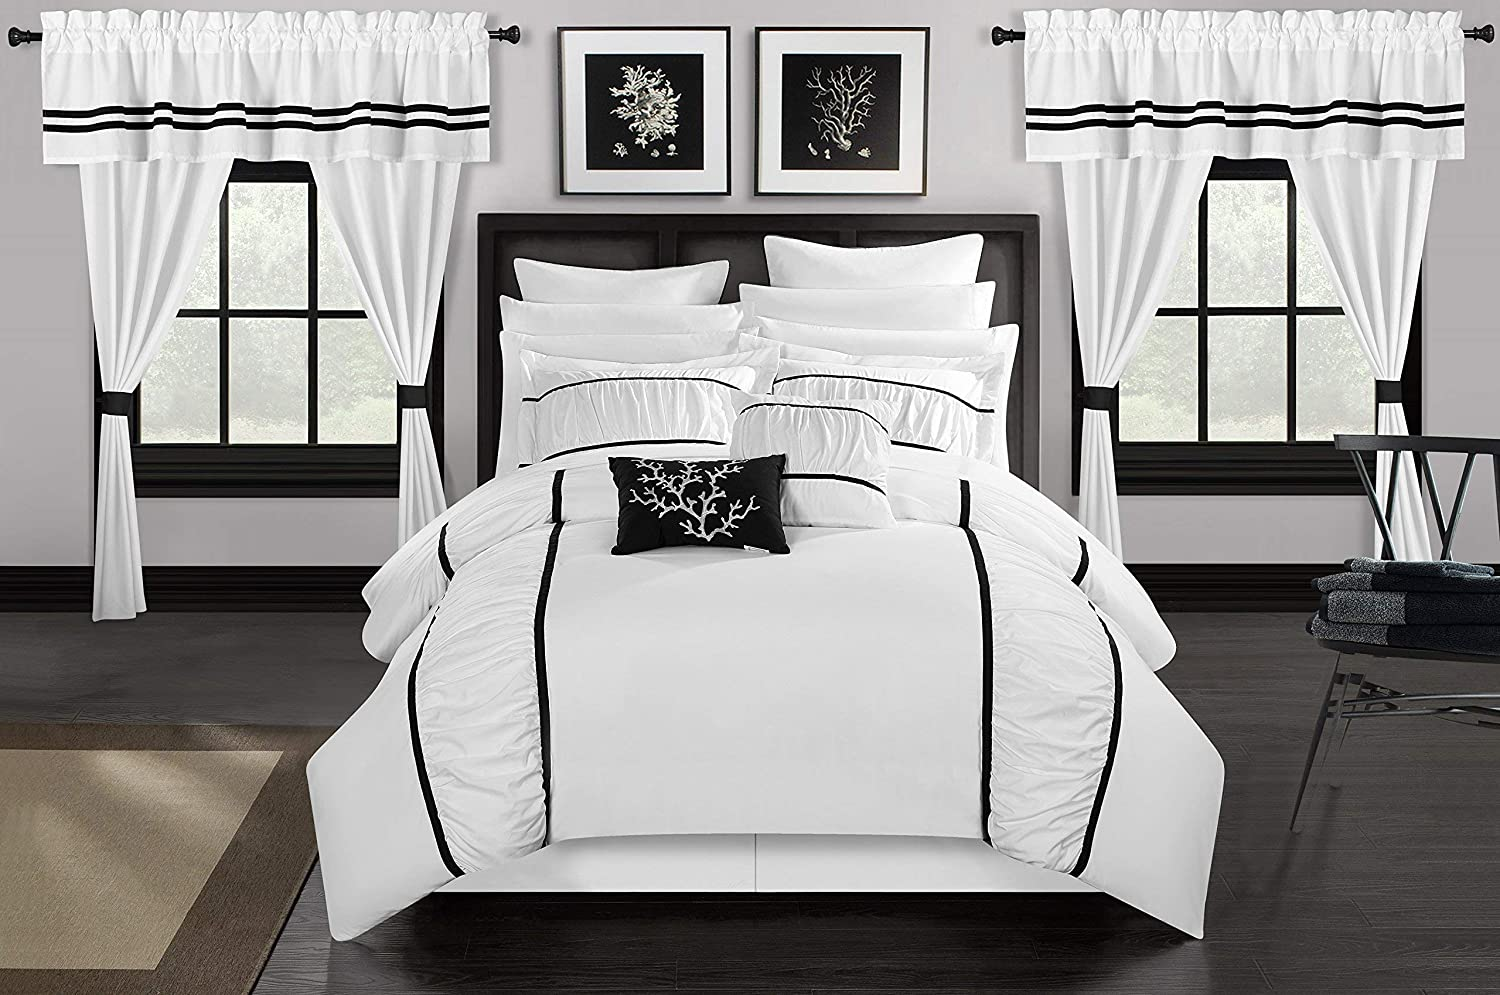 Chic Home Mayan 24 Piece Bed in a Bag Comforter Set, King, White,